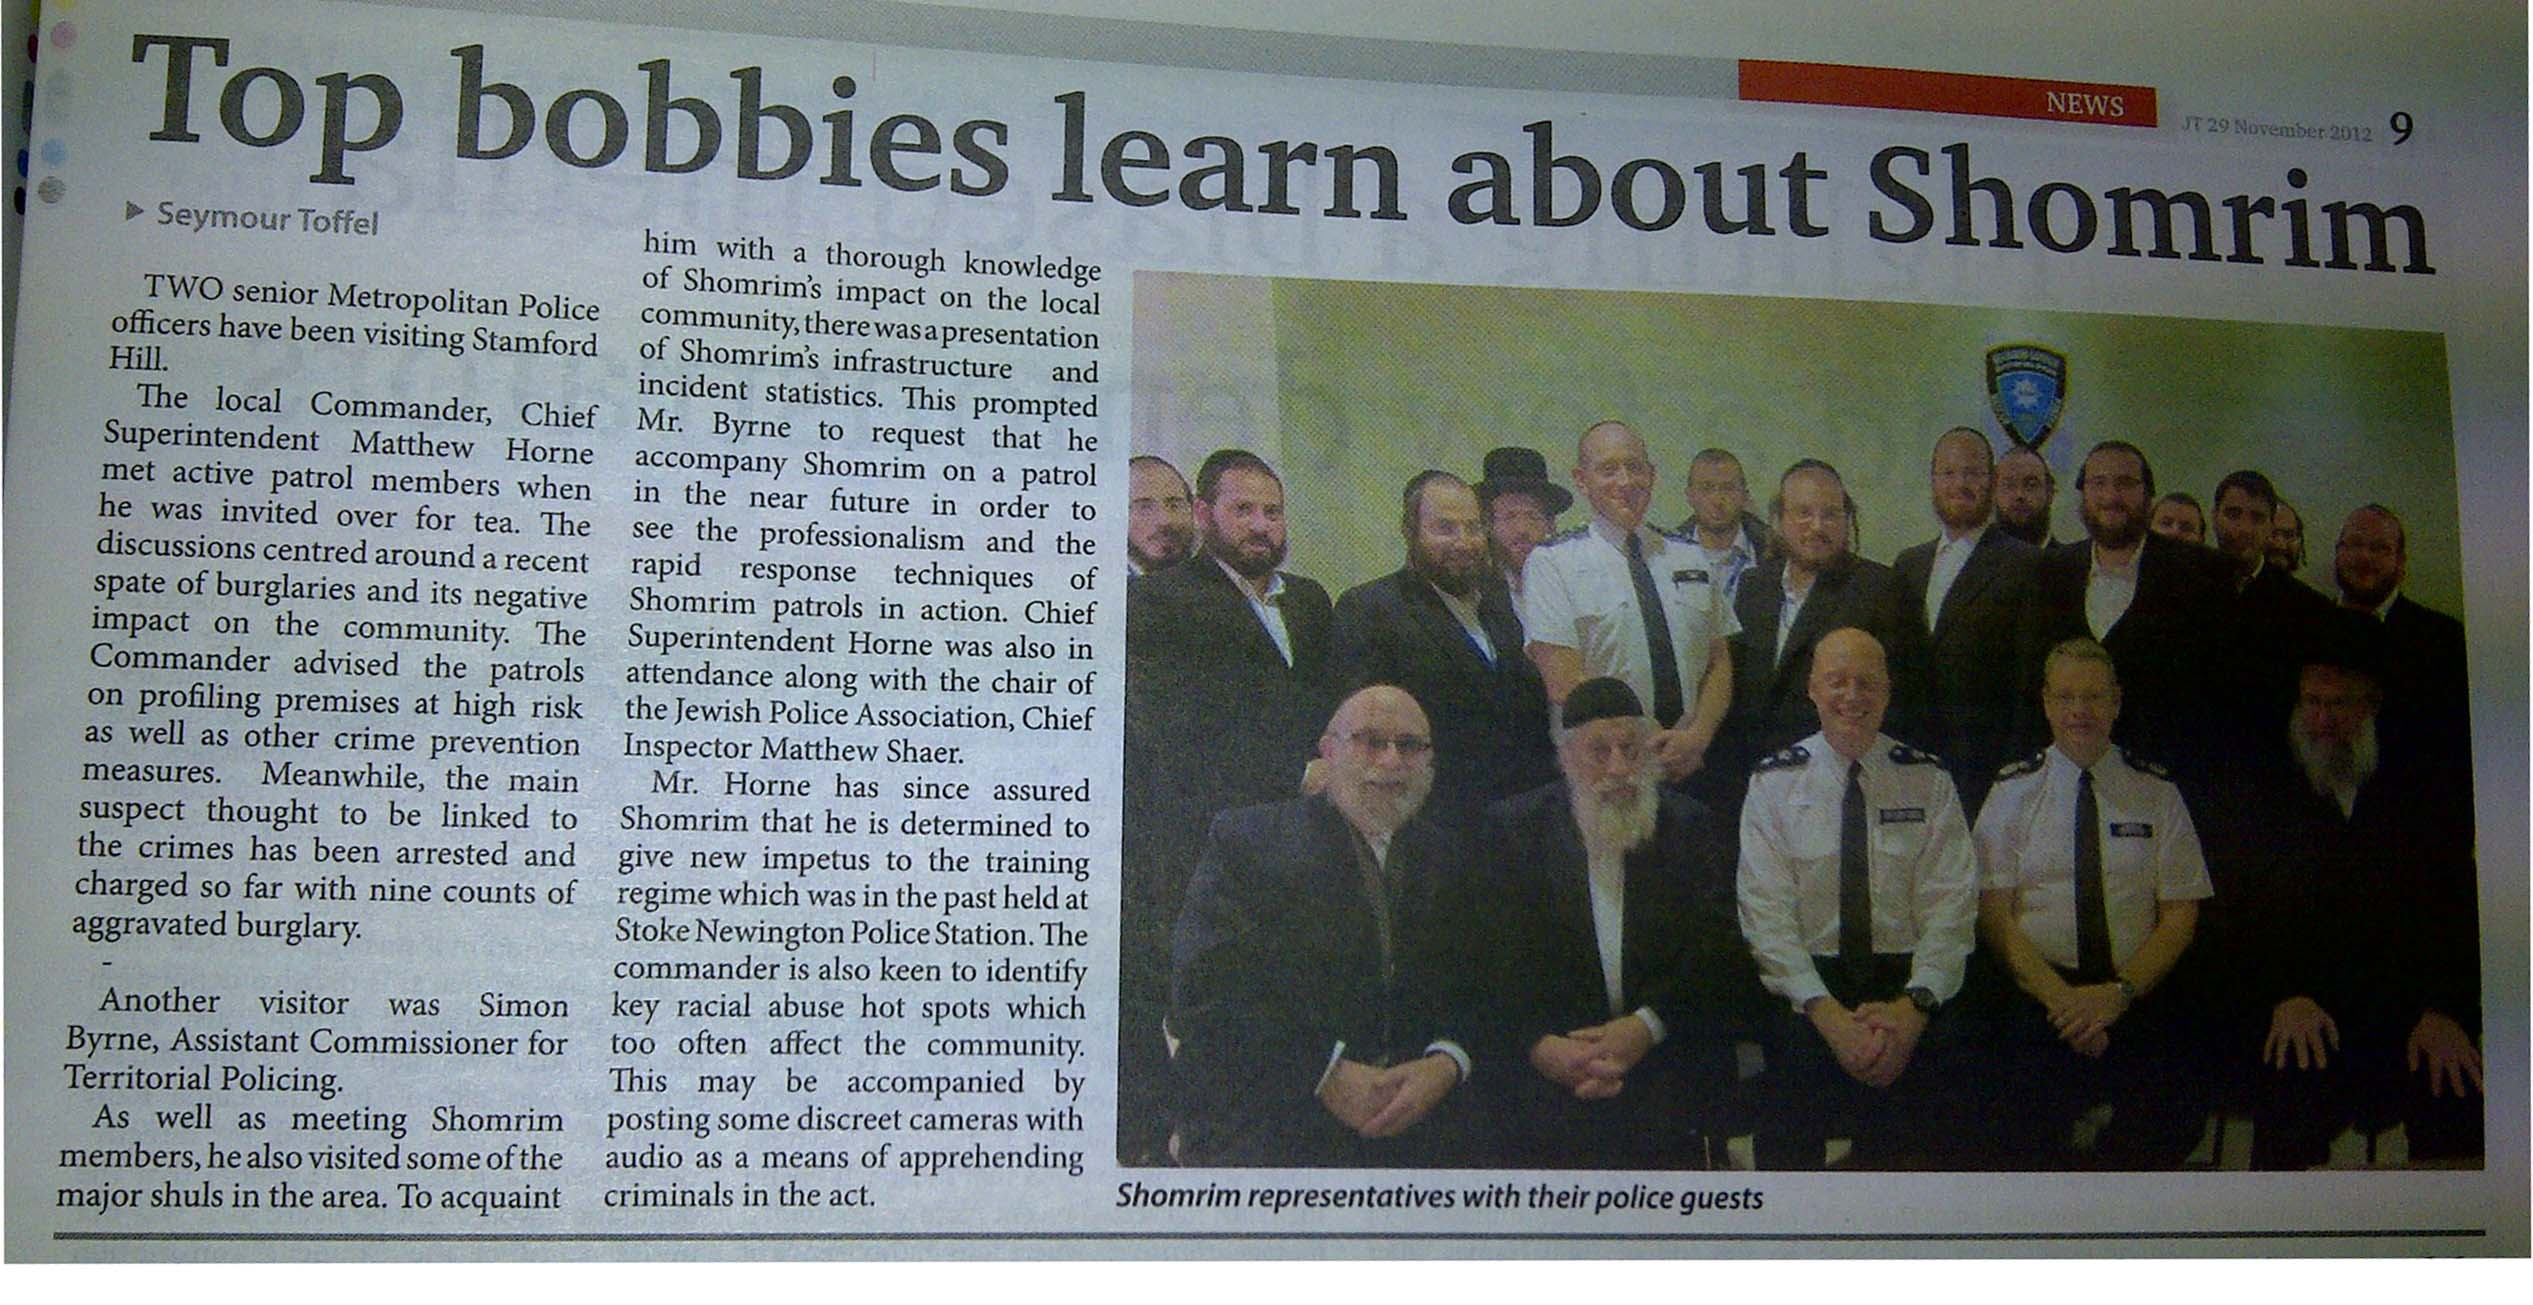 Top Bobbies Learn About Shomrim